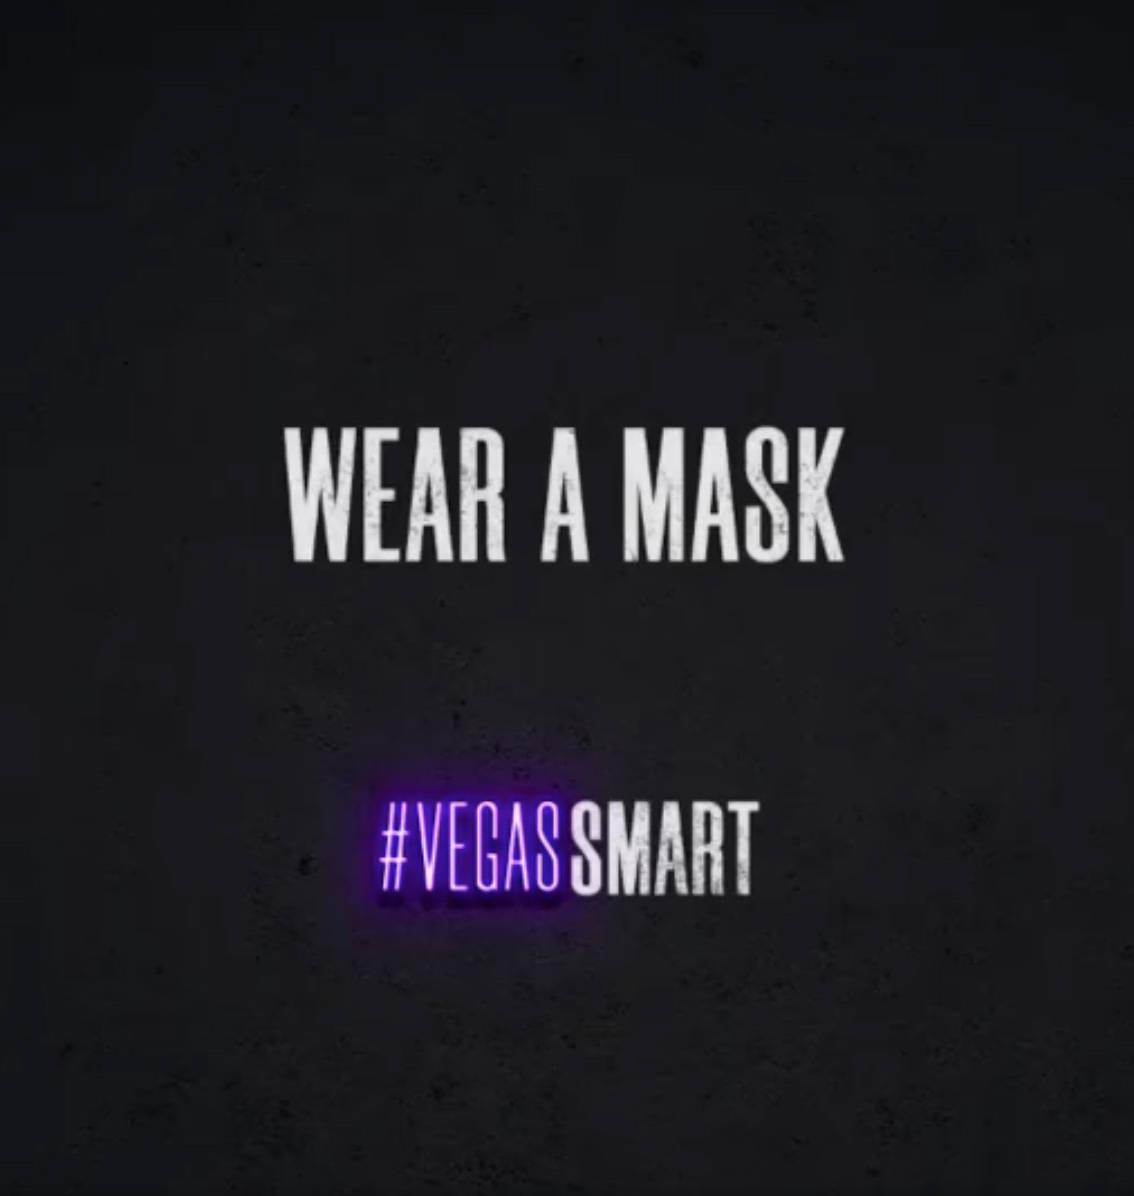 The Las Vegas Convention and Visitors Authority launched its #VegasSmart social media campaign ...